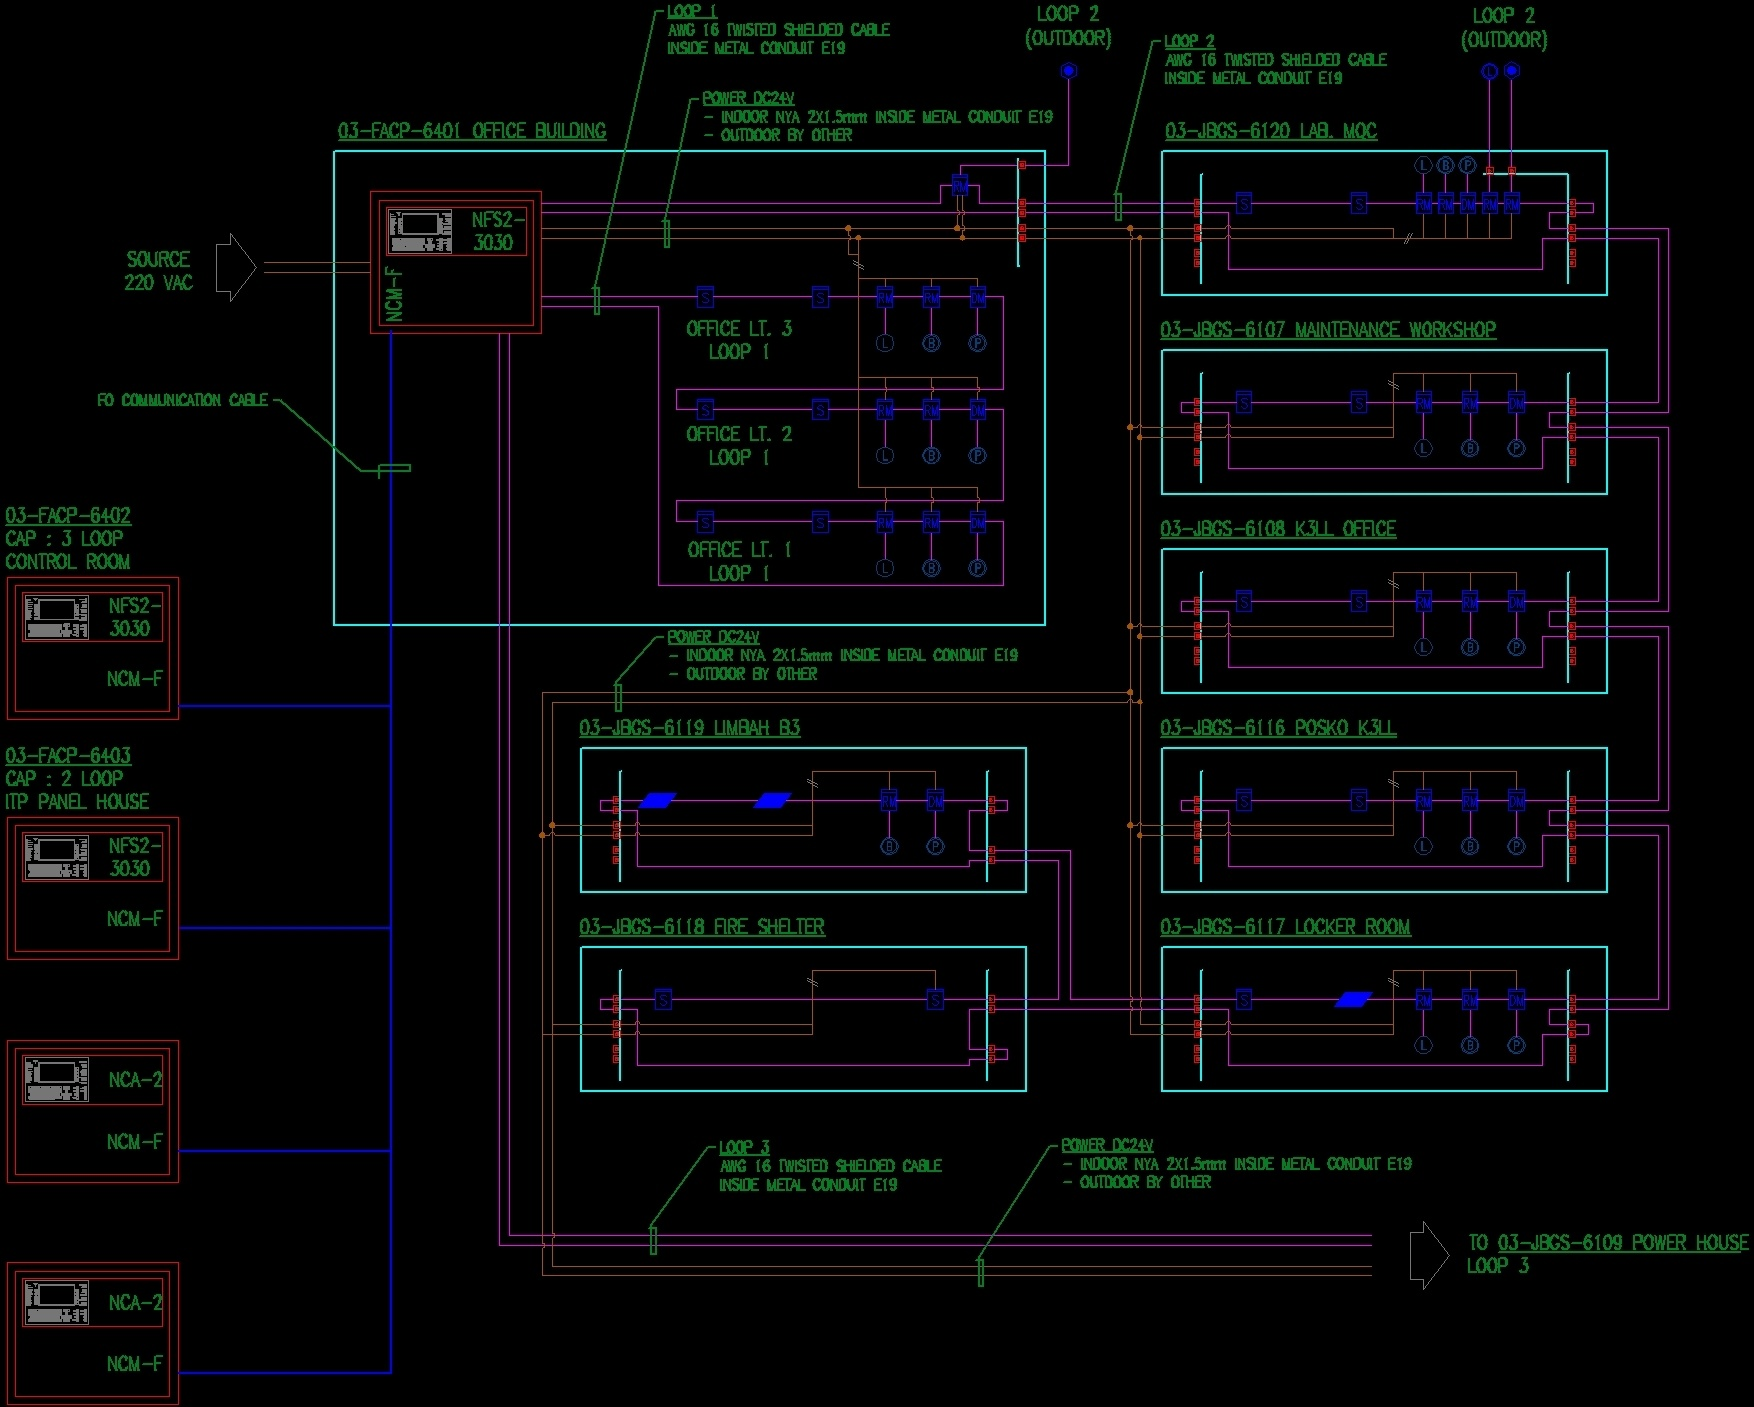 Fire Protection    Diagram    DWG Block for AutoCAD     Designs CAD